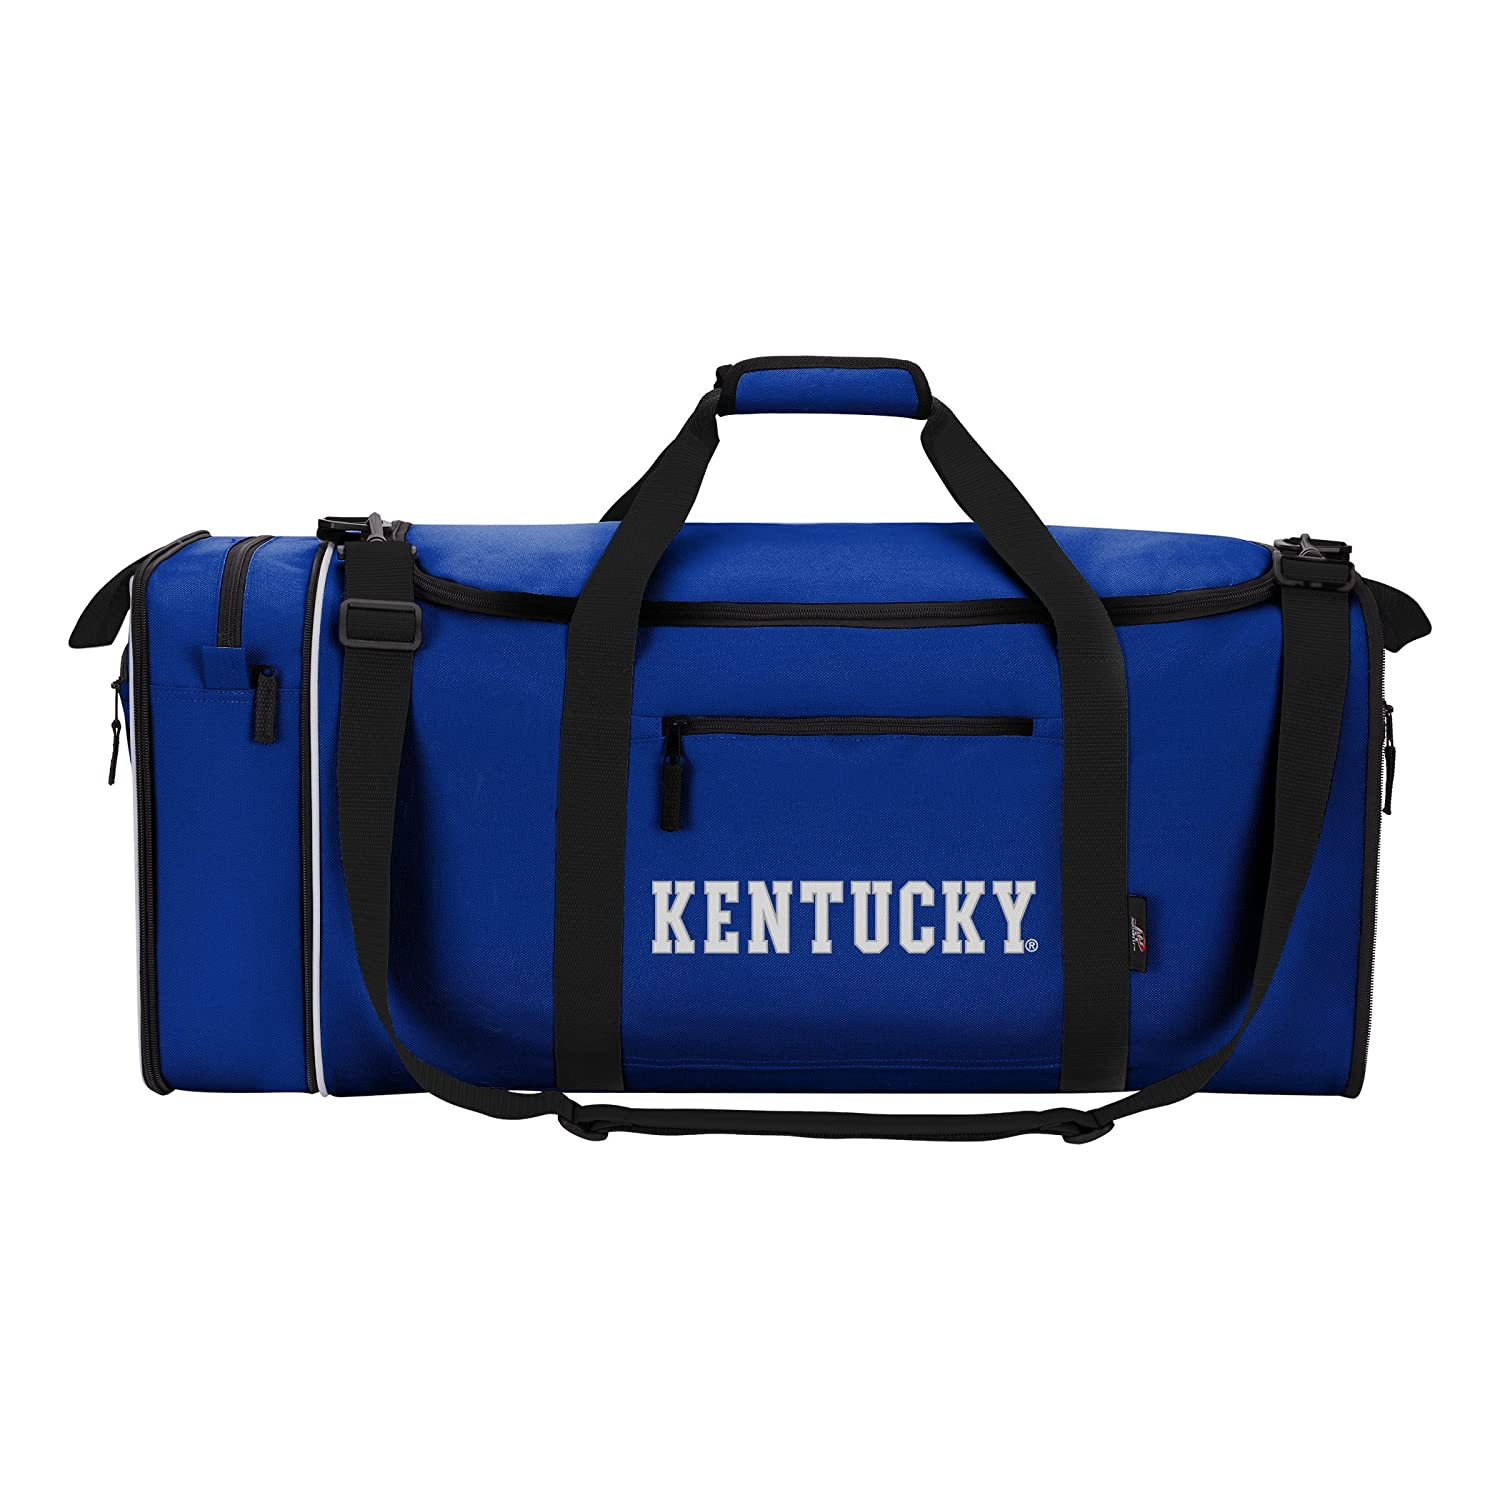 Offically Licensed NCAA Kentucky Wildcats Steal Duffel Bag 28 Multi Color